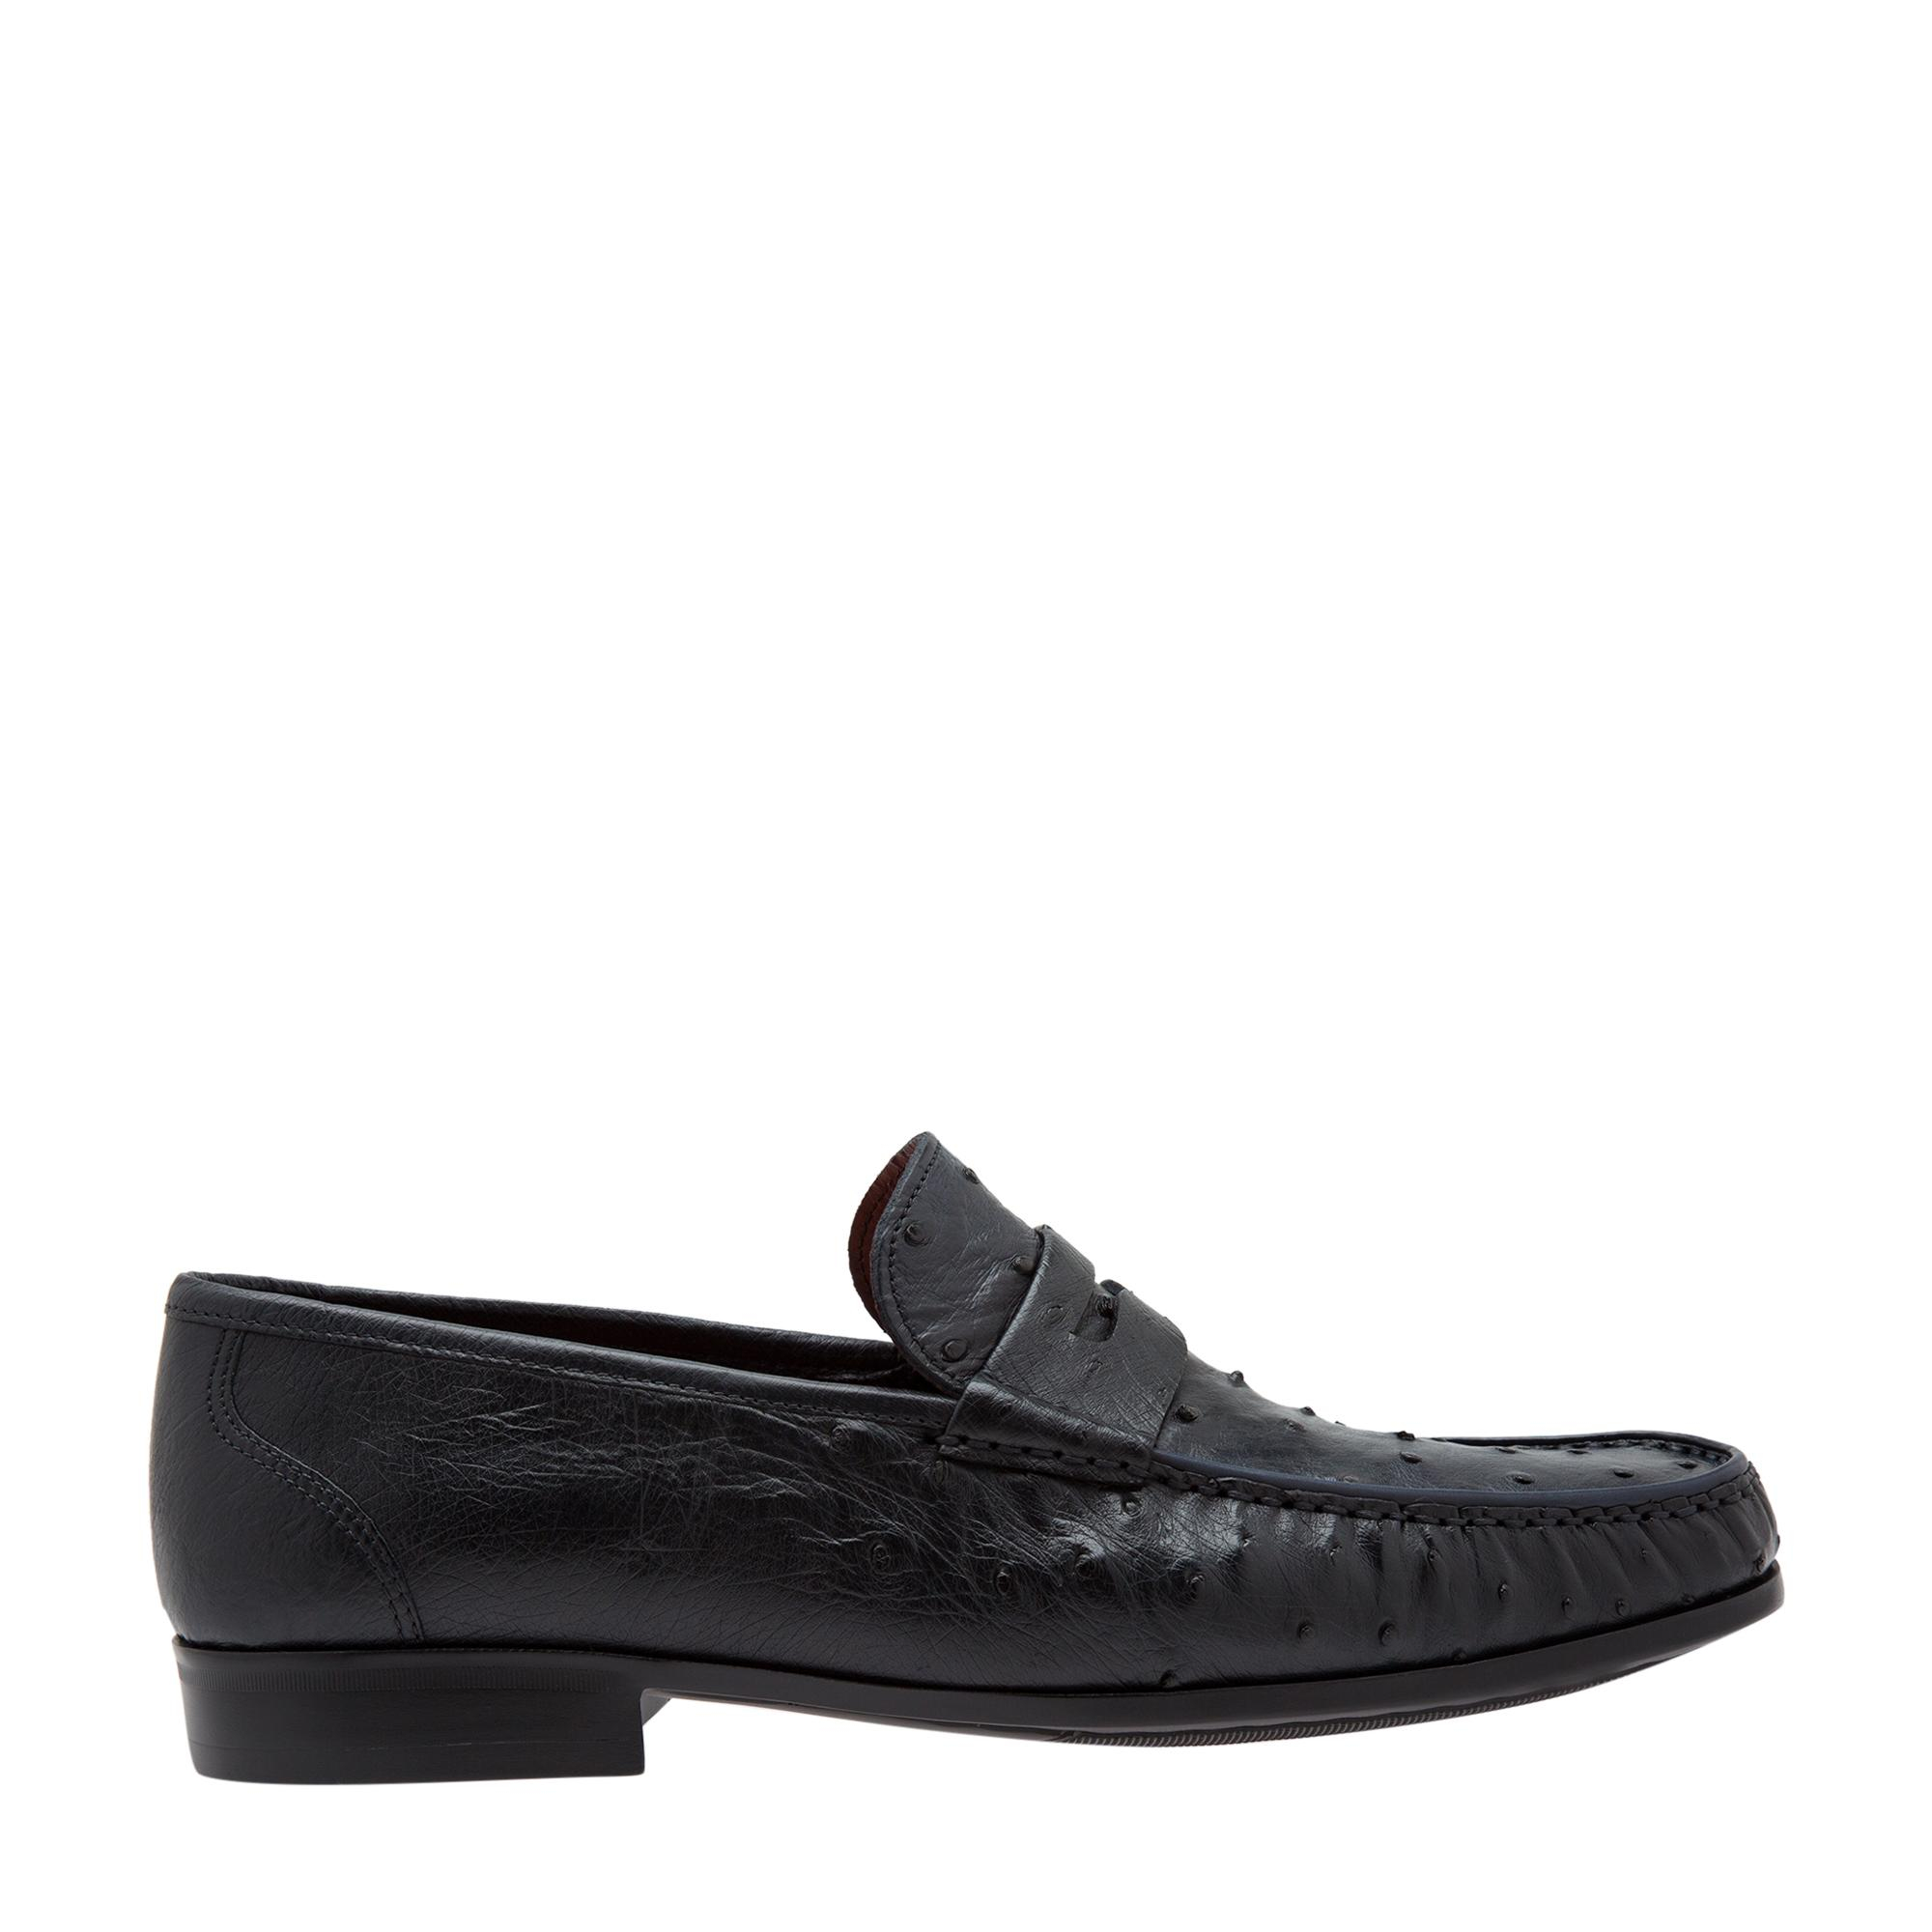 Ostrich loafers